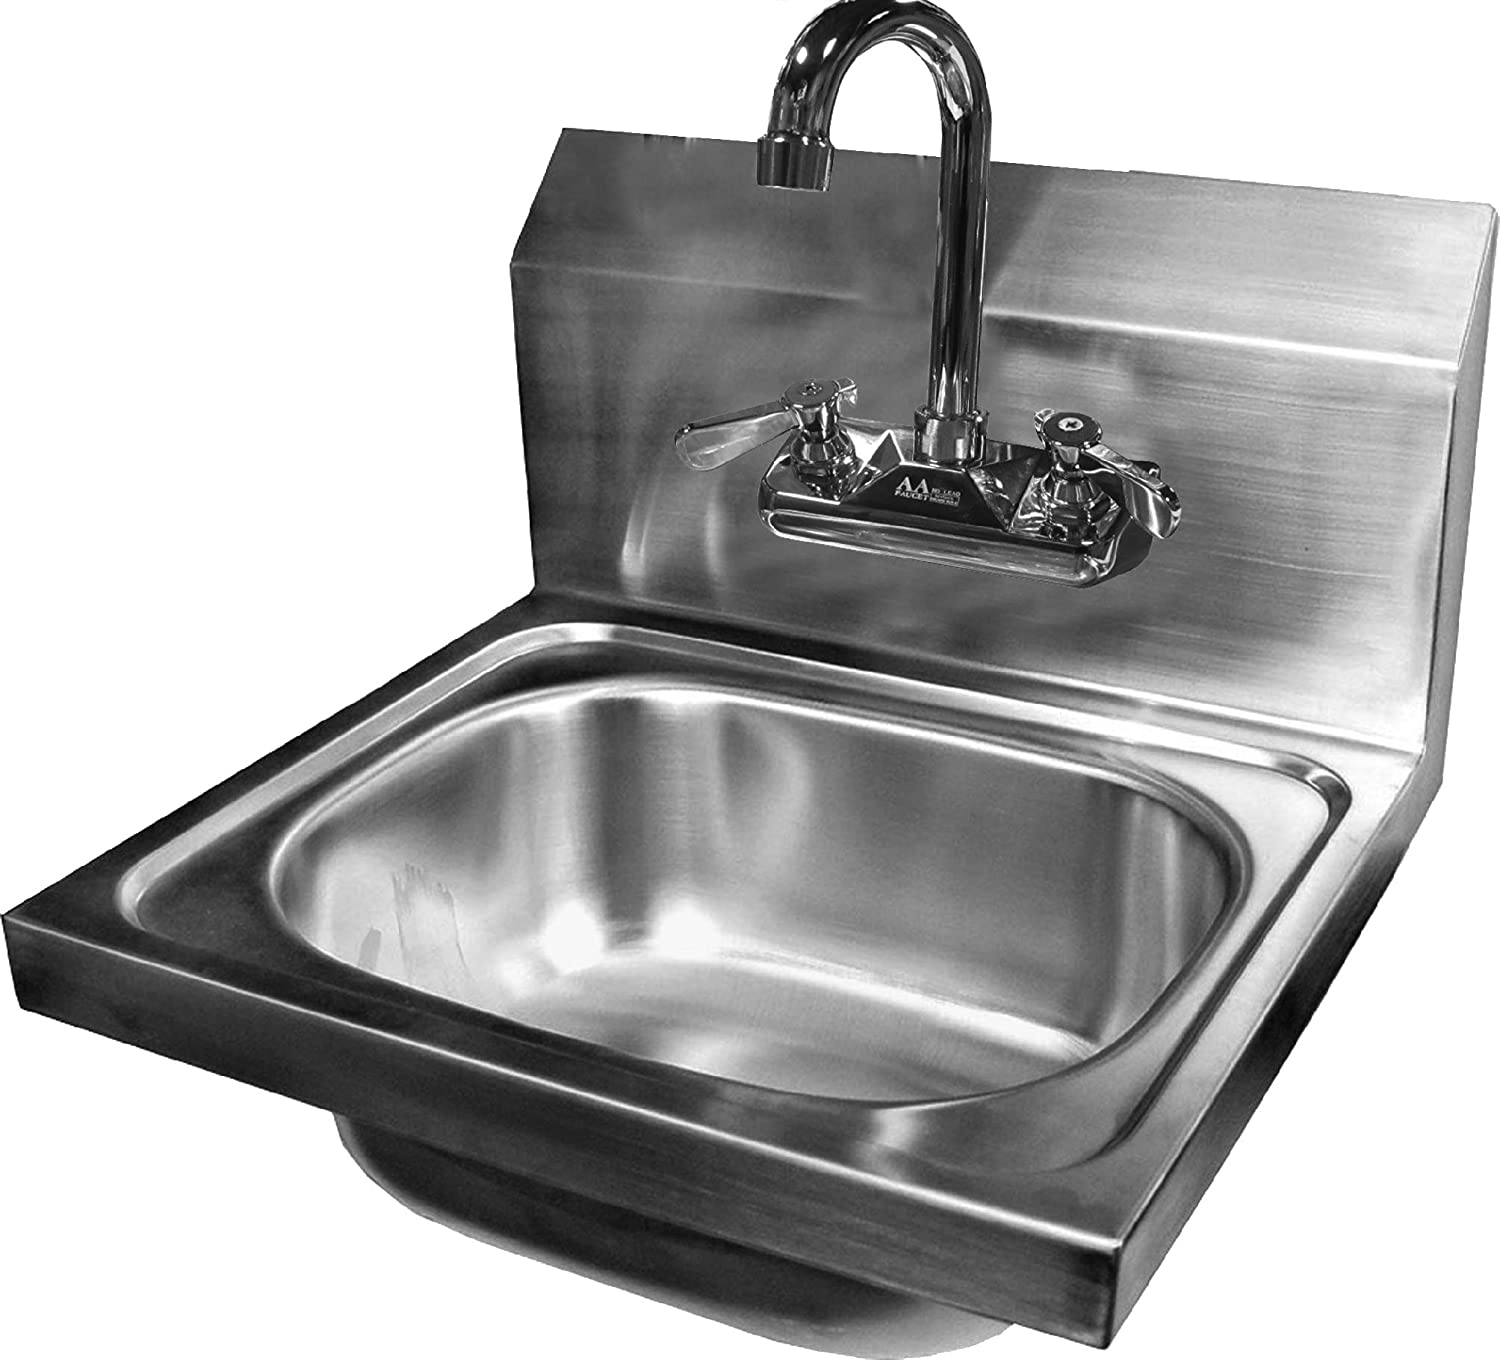 Amazon.com: ACE Wall Mount Stainless Steel Hand Sink with No Lead ...